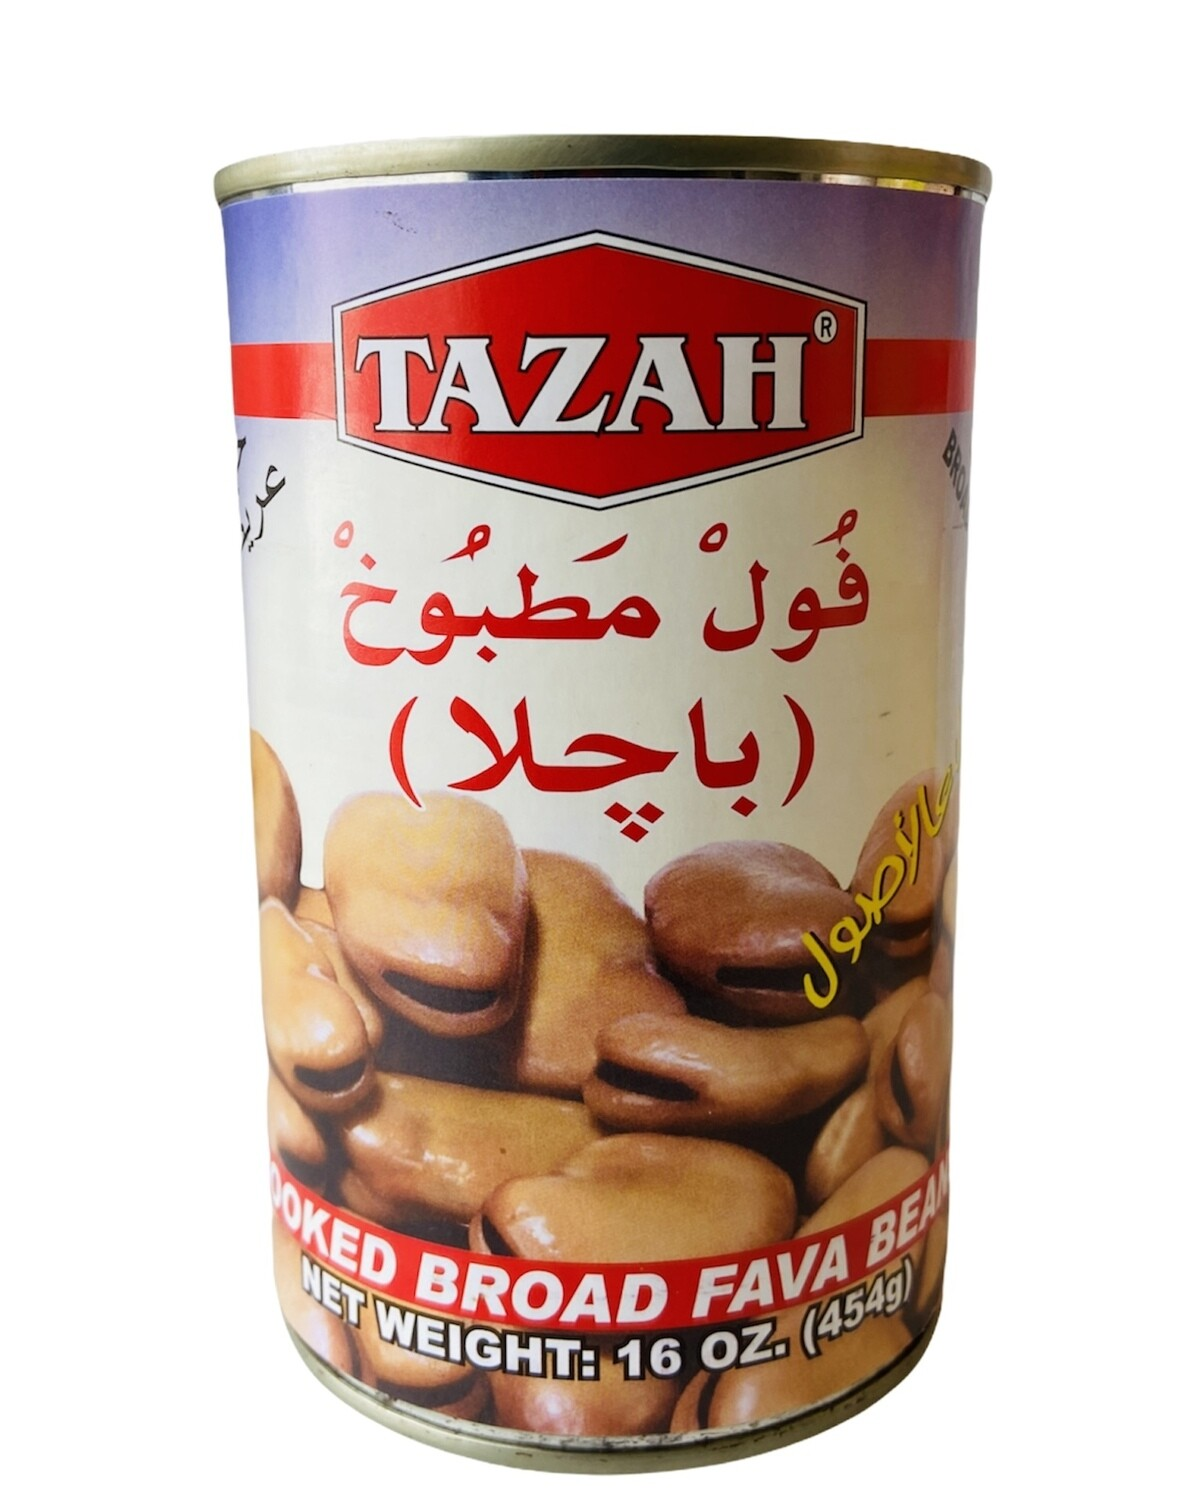 Tazah Cooked Broad Fava Beans 24x16oz